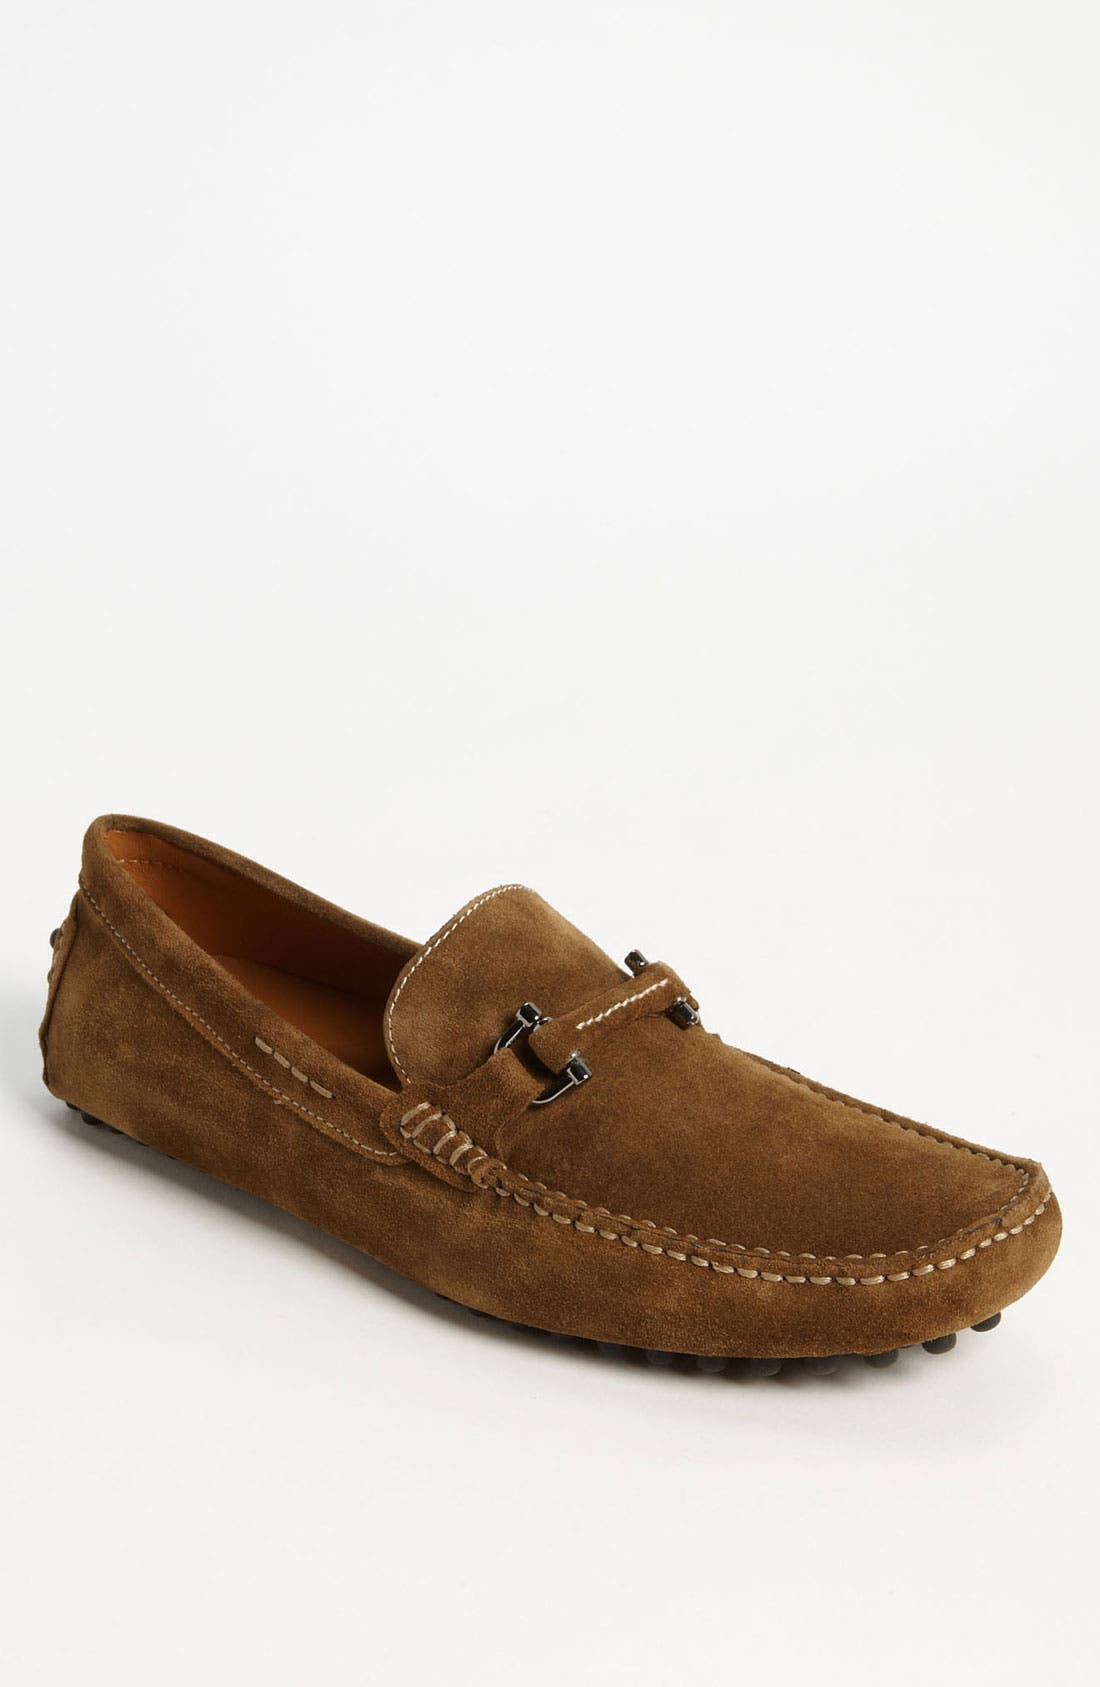 'Antigua' Driving Shoe,                         Main,                         color, Tobacco Suede